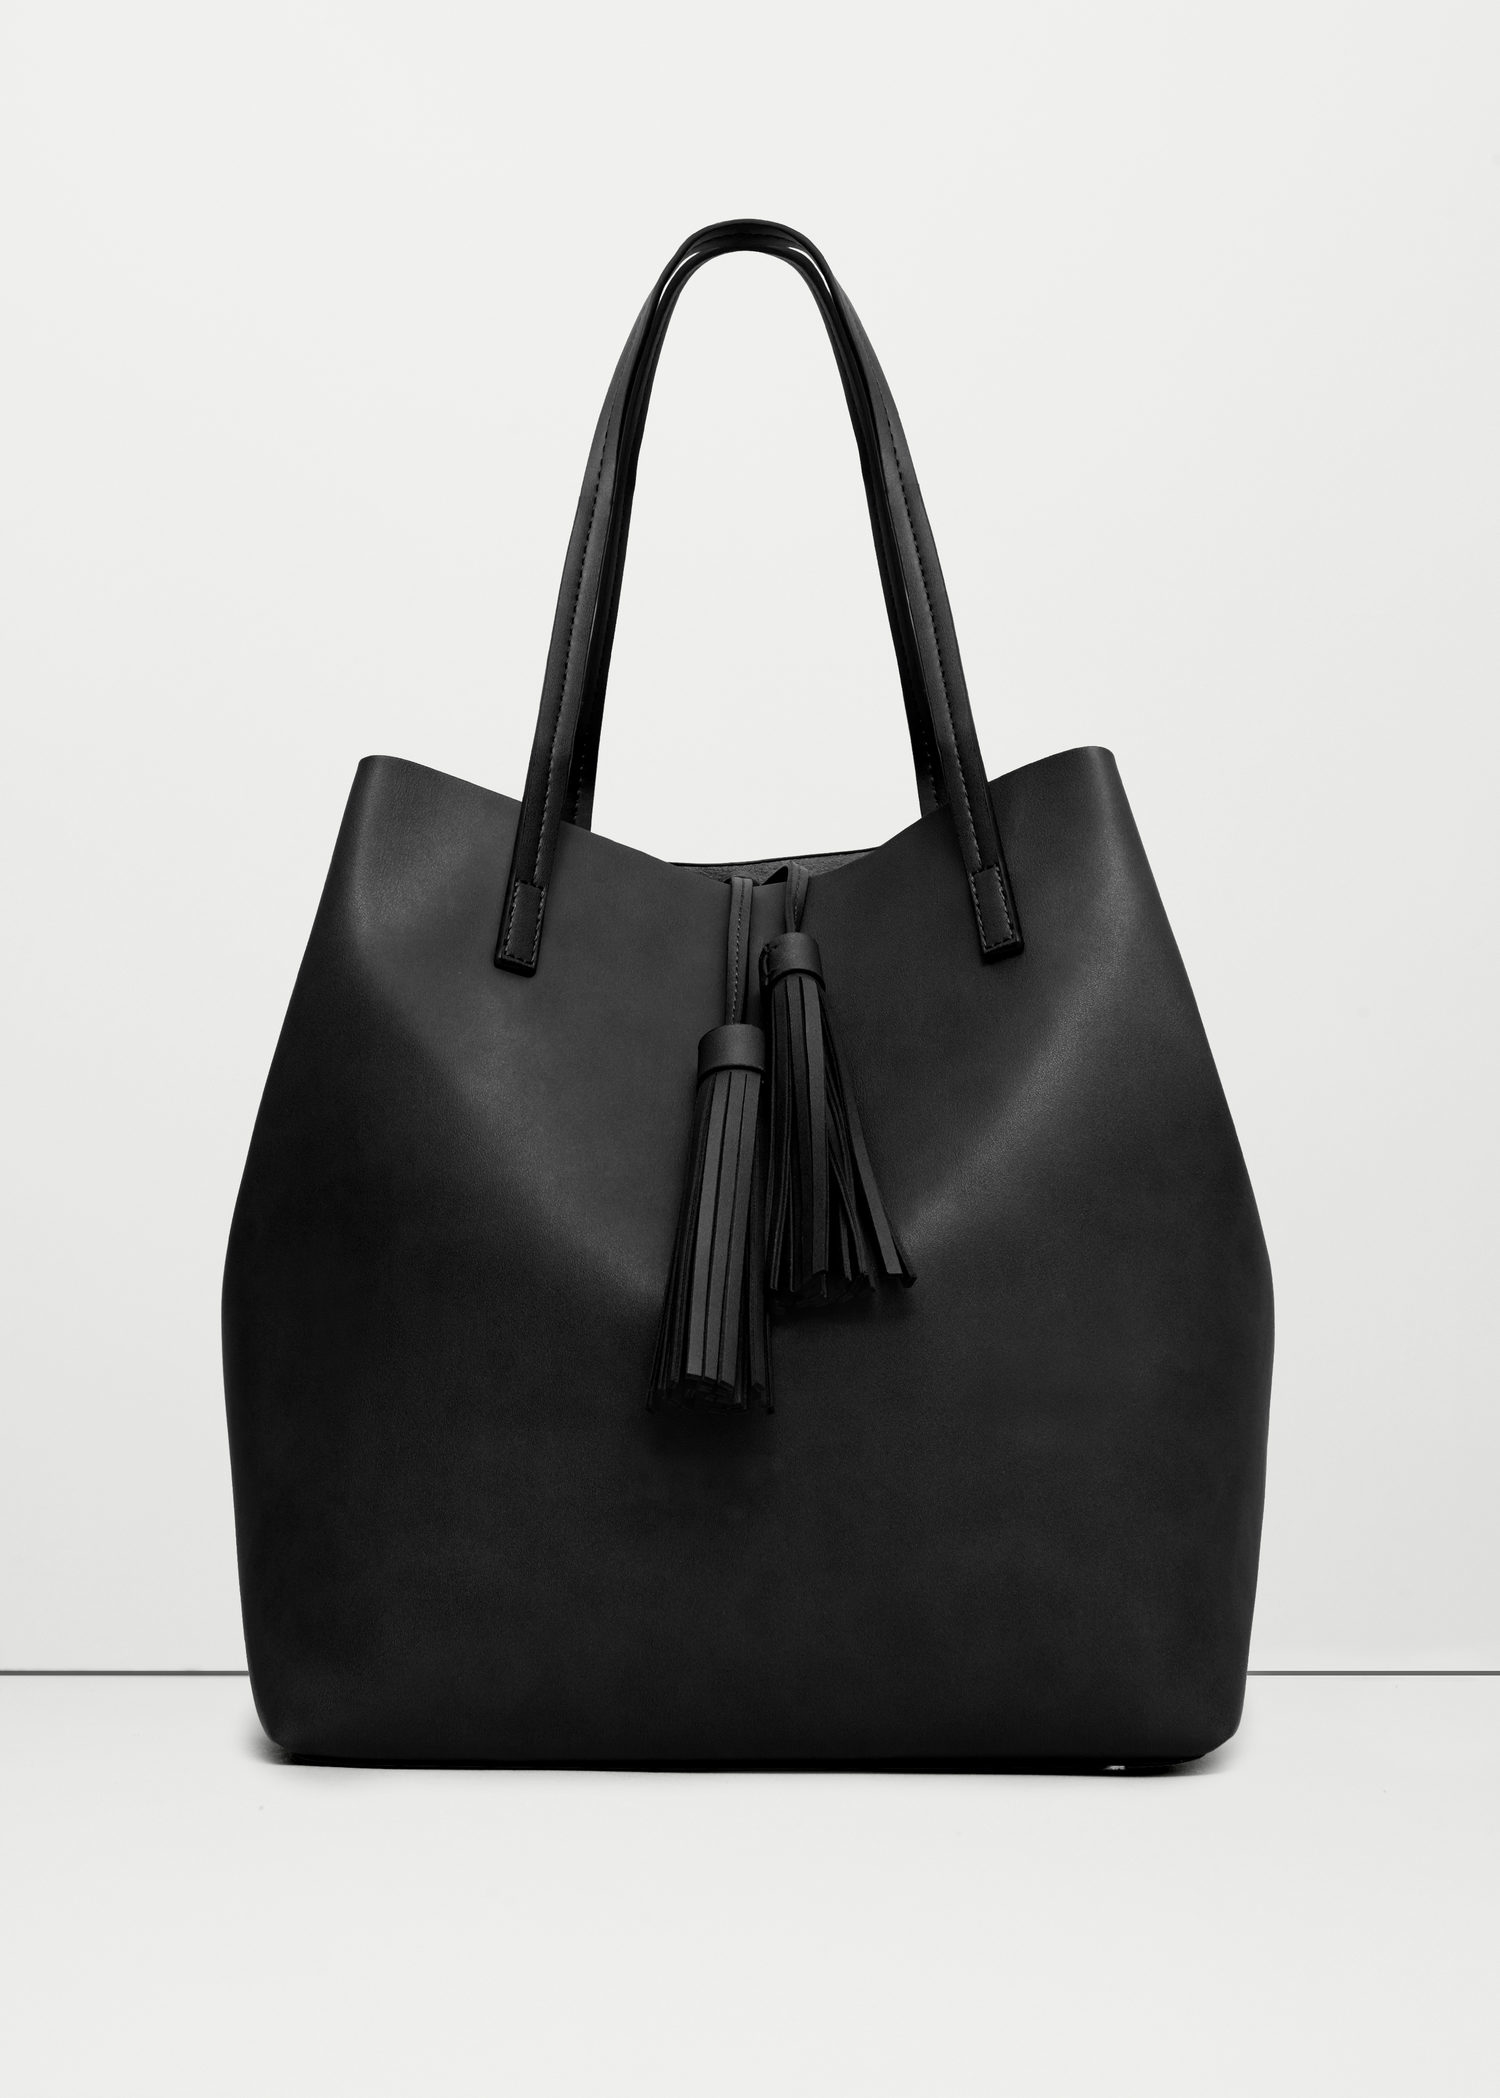 Mango Tassel Shopper Bag in Black | Lyst